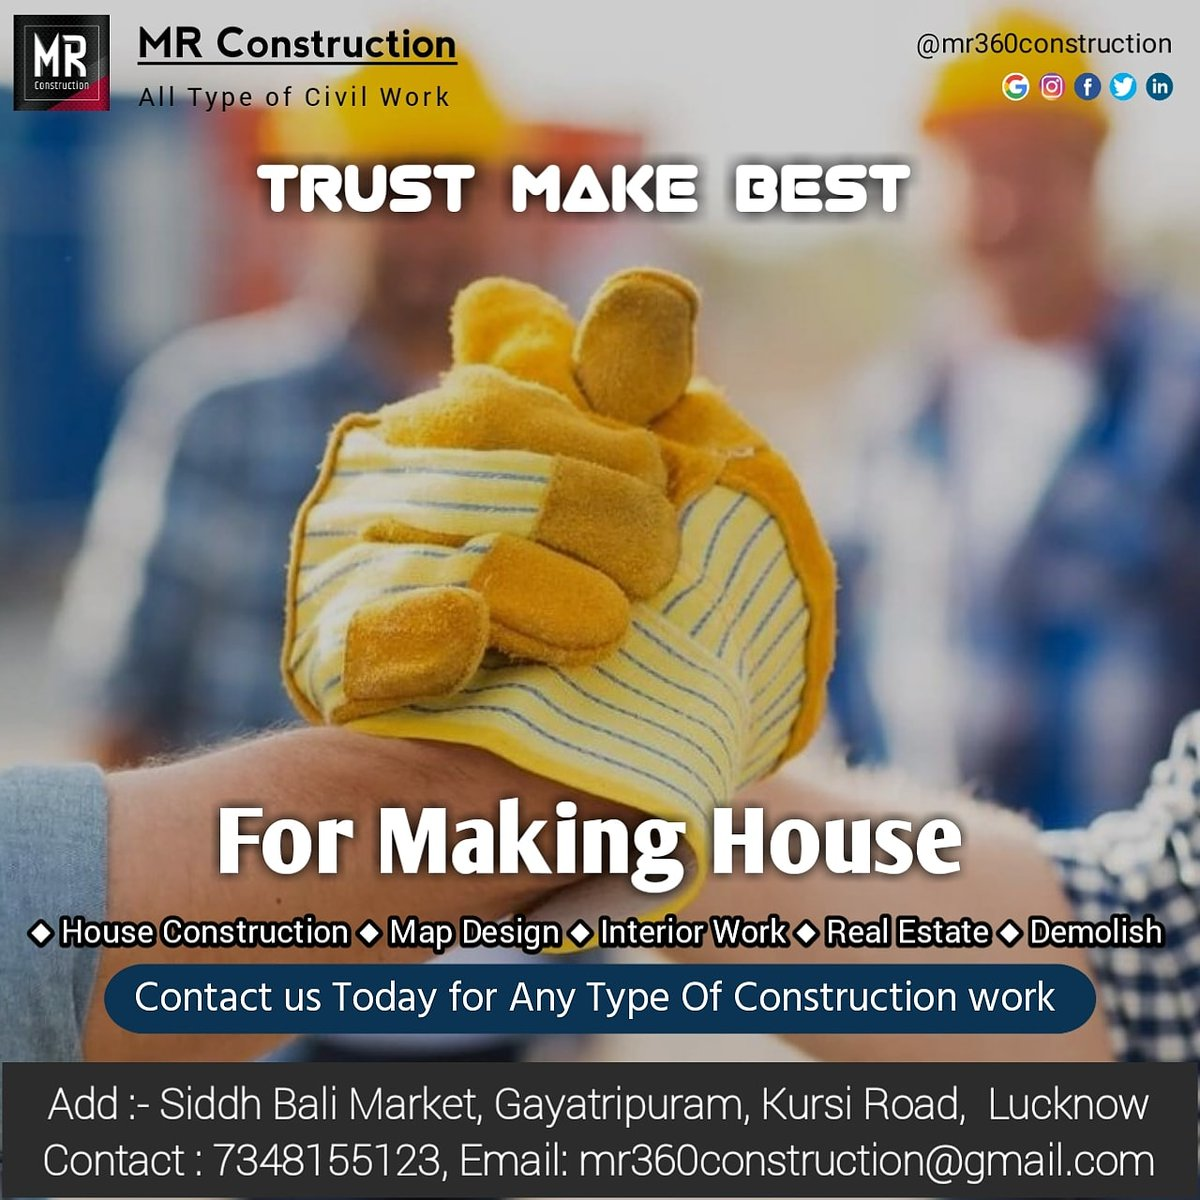 #Construction #Map Design #Interior #renovation #House Construction #House #Google #Contractor Lucknow #building #architects #MR Construction Lucknow #MR https://t.co/OngWHrnvOs